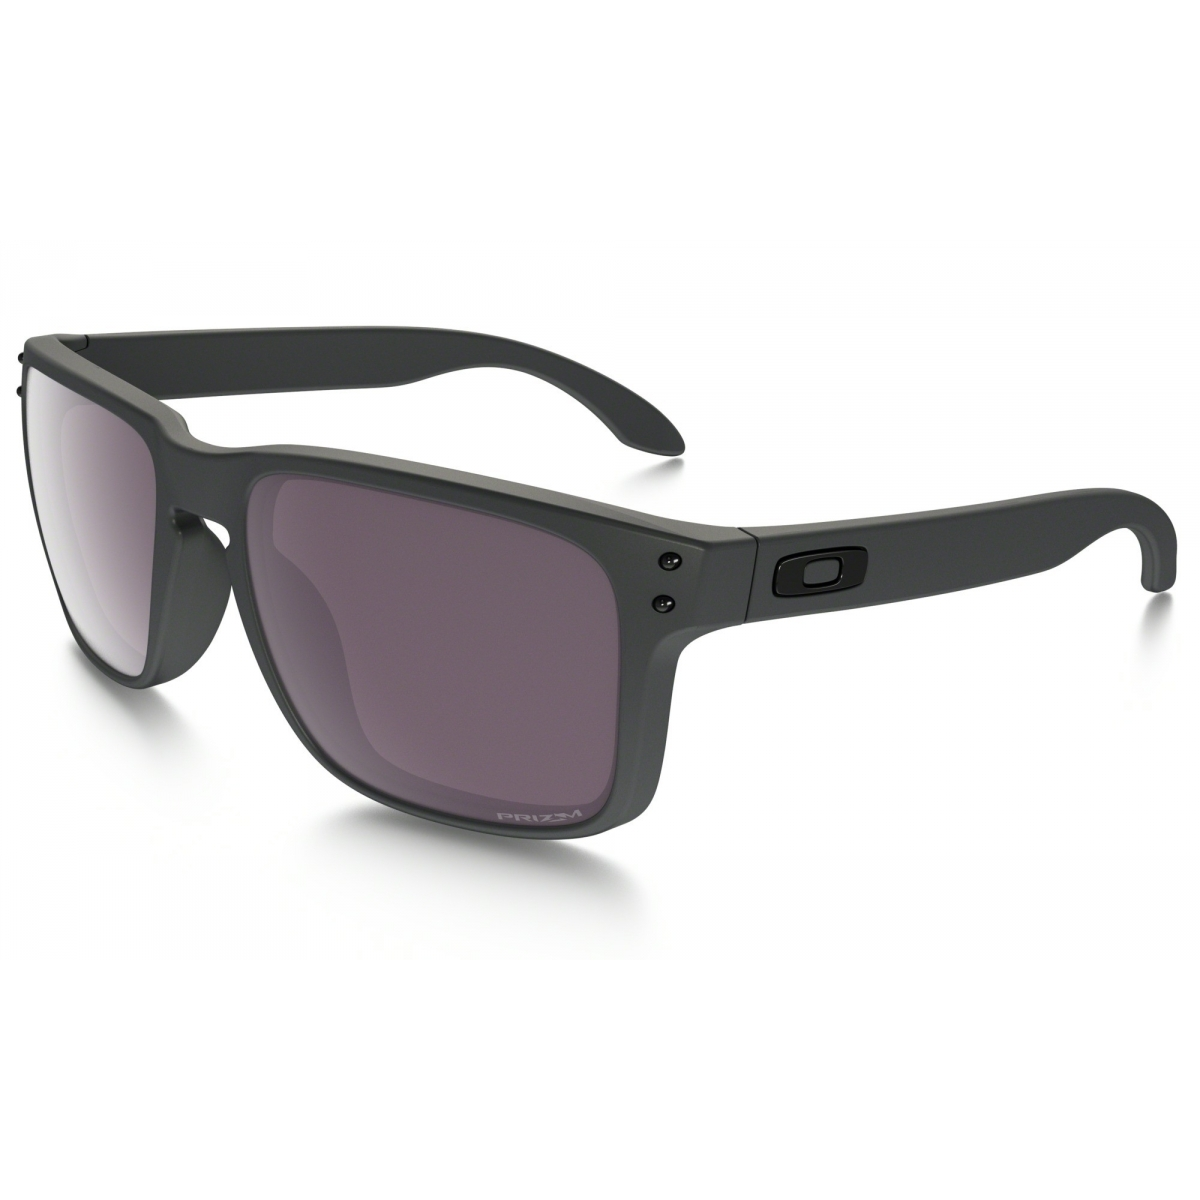 61063aa668c21d Lunettes Soleil Oakley Holbrook Steel Prizm Daily Polarized ...